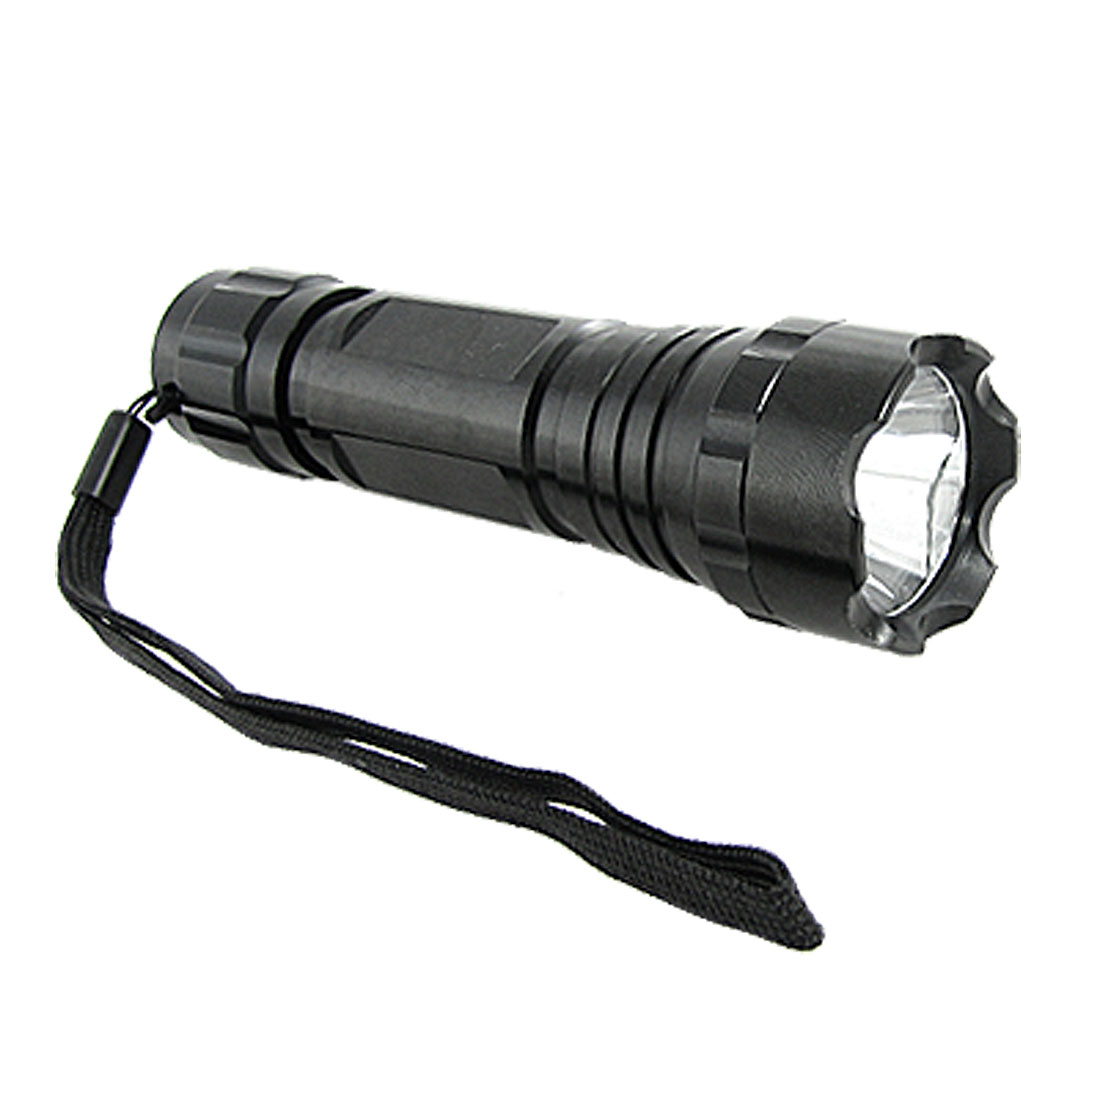 2W 110 Lumens Aluminium LED Xenon Flashlight Torch w/ Handy Strap